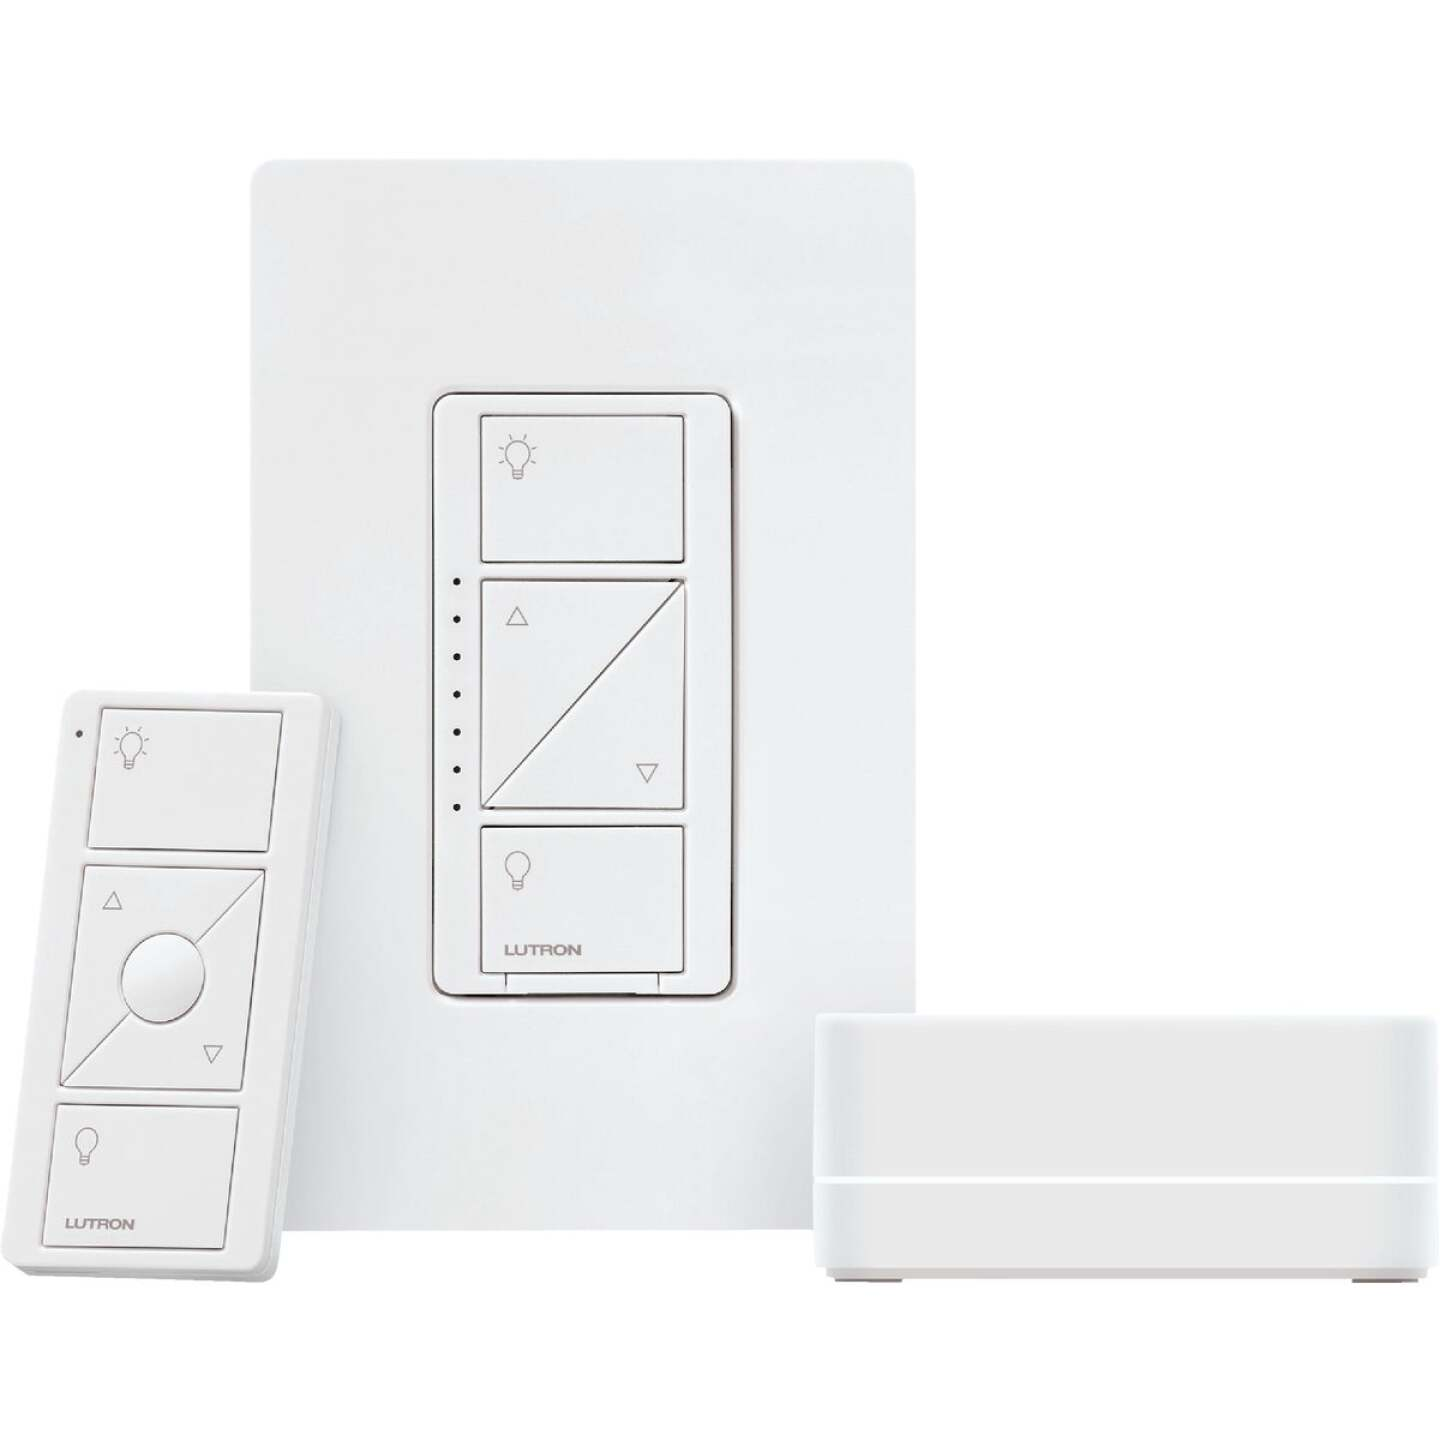 Lutron Caseta White Smart Lighting Wireless Dimmer Image 1